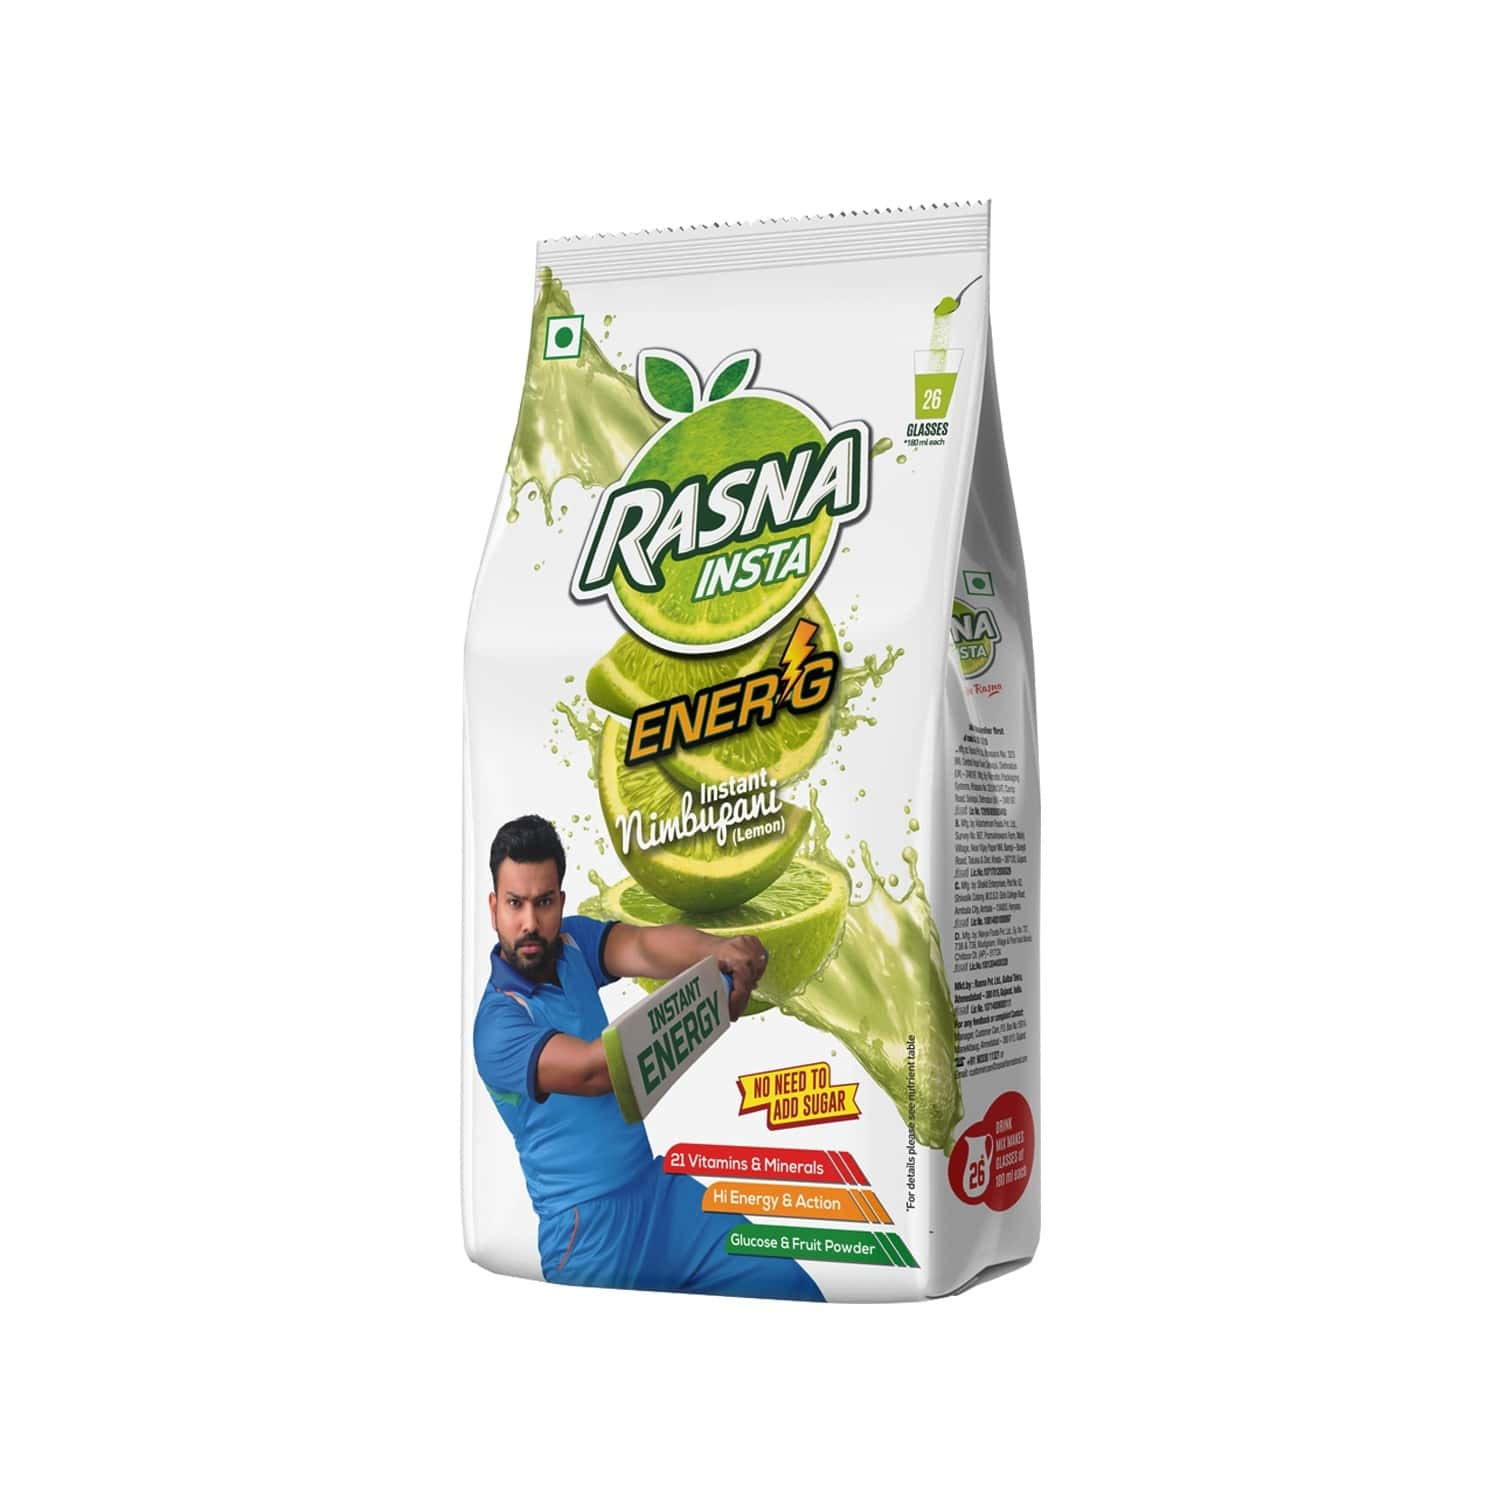 Rasna Insta Drink Concentrate Mix 500 G Pack - Lemon